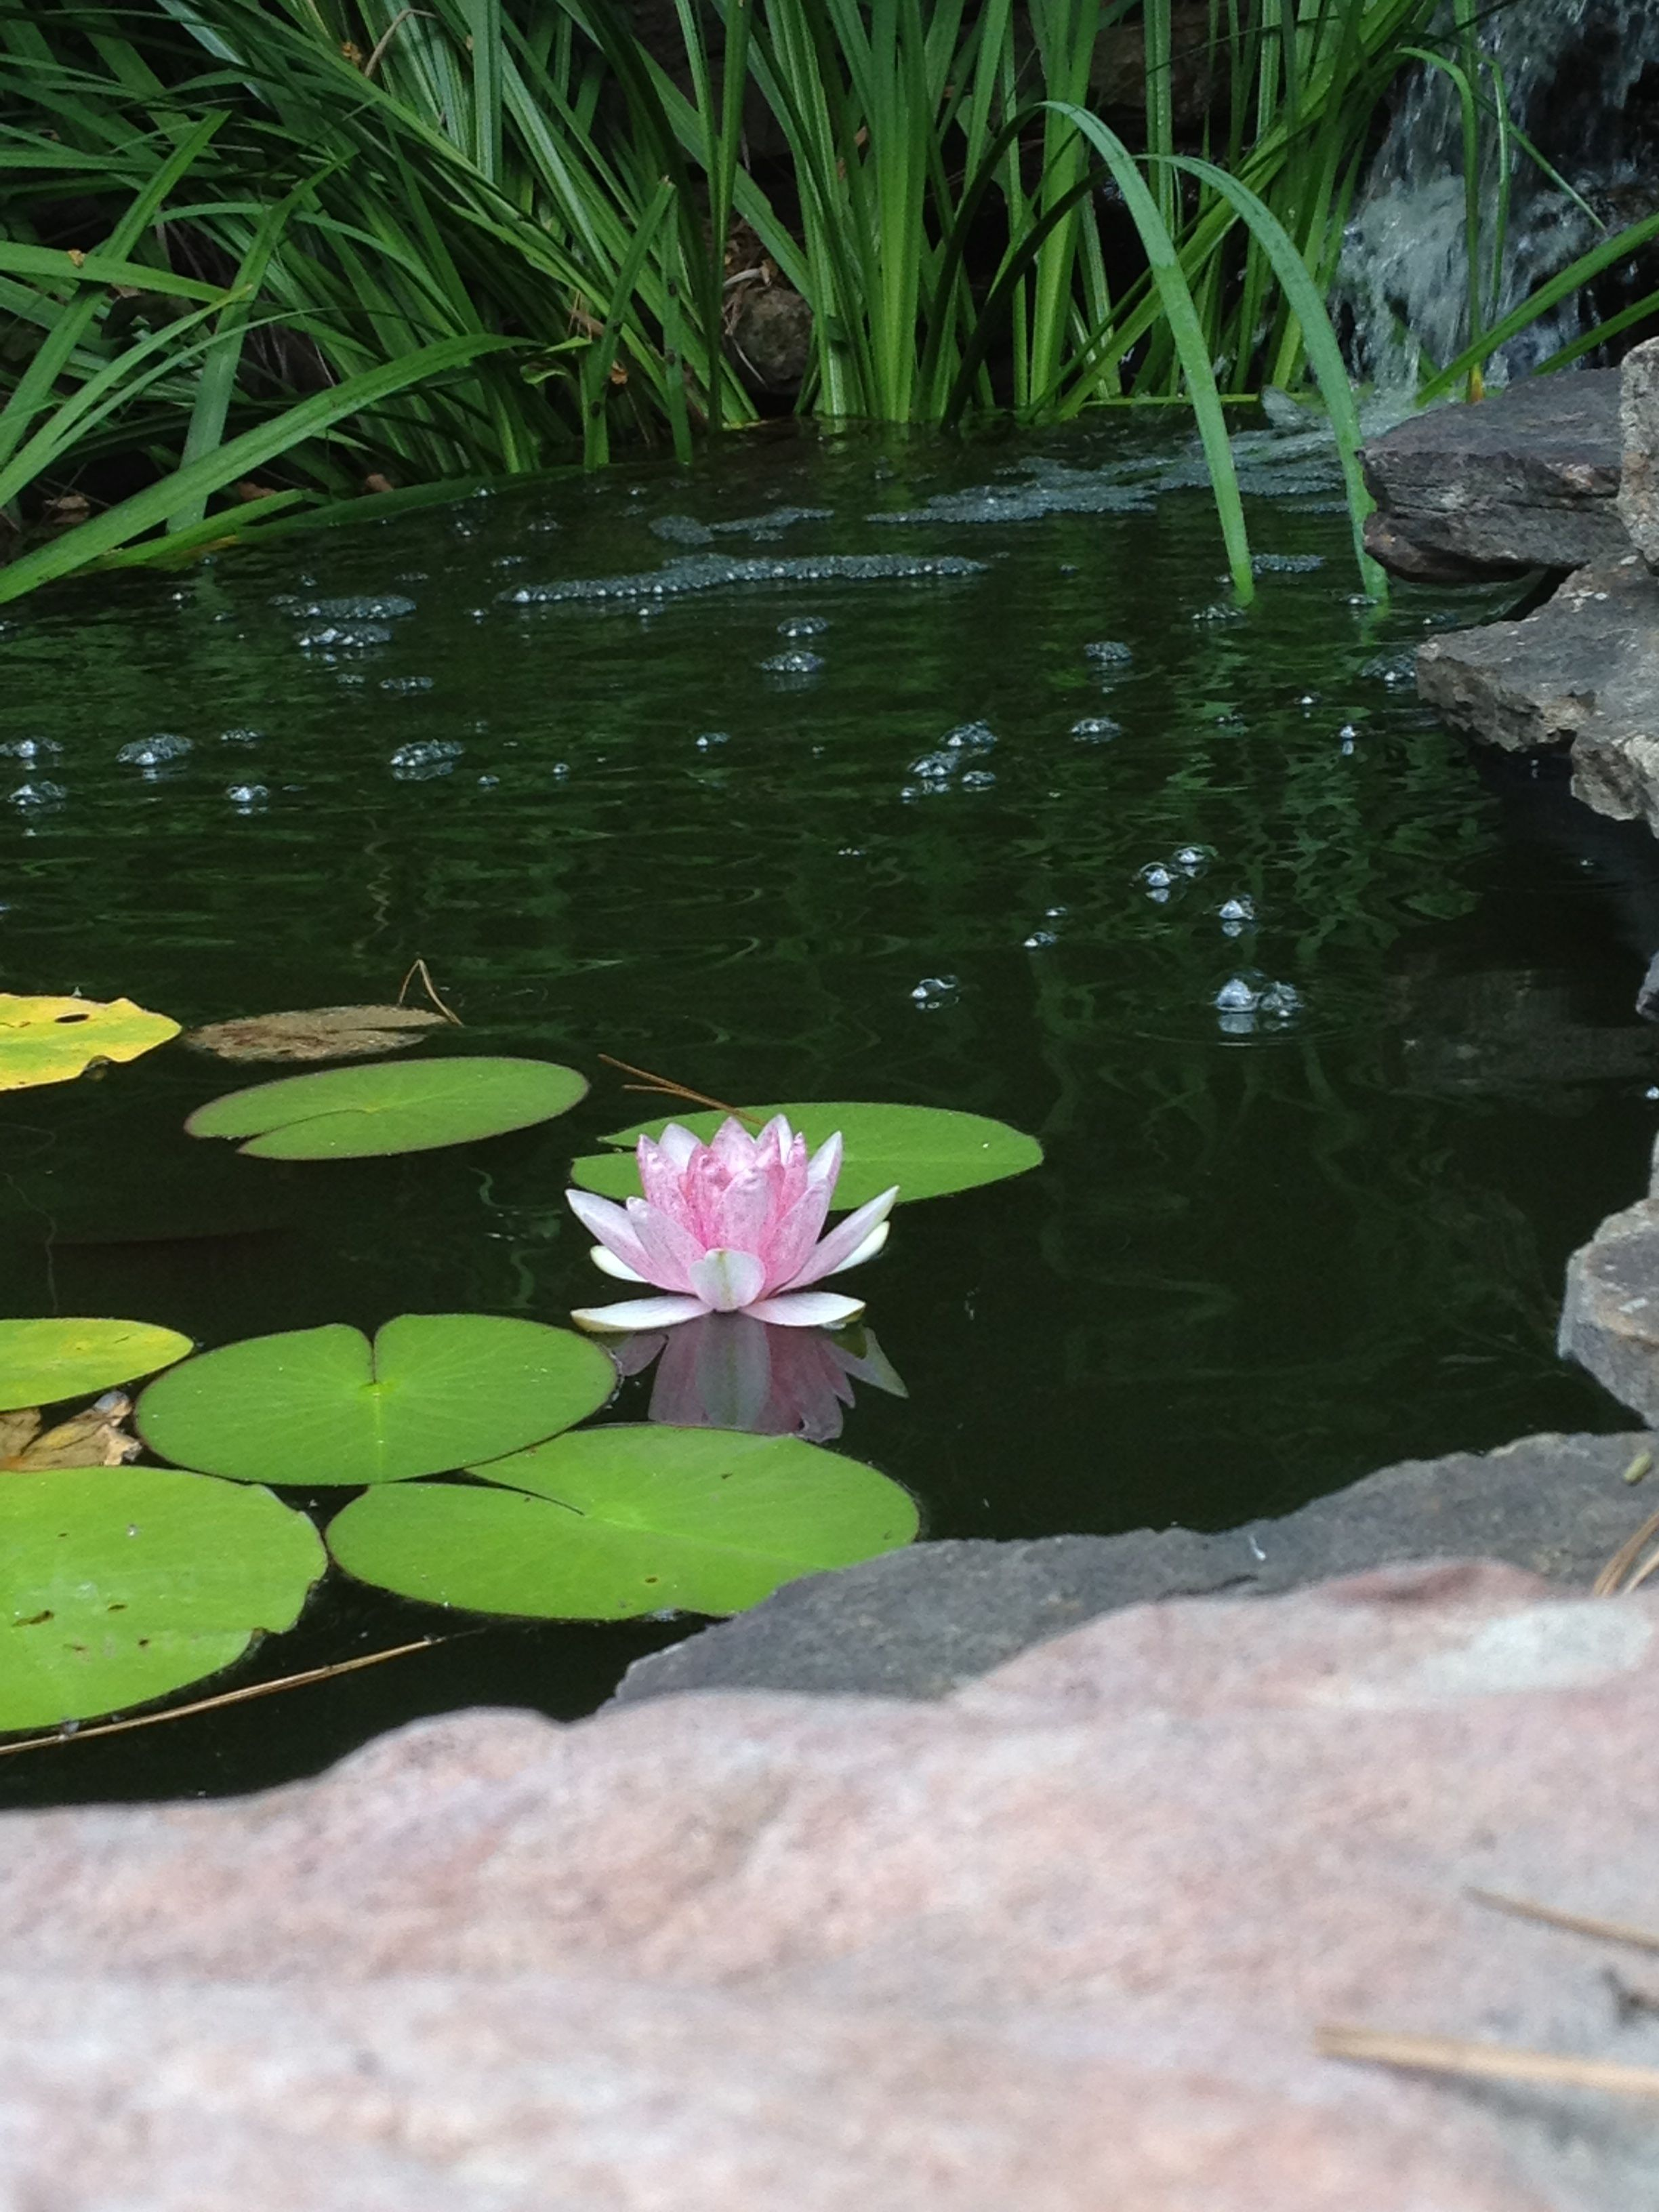 Our pond is blooming!